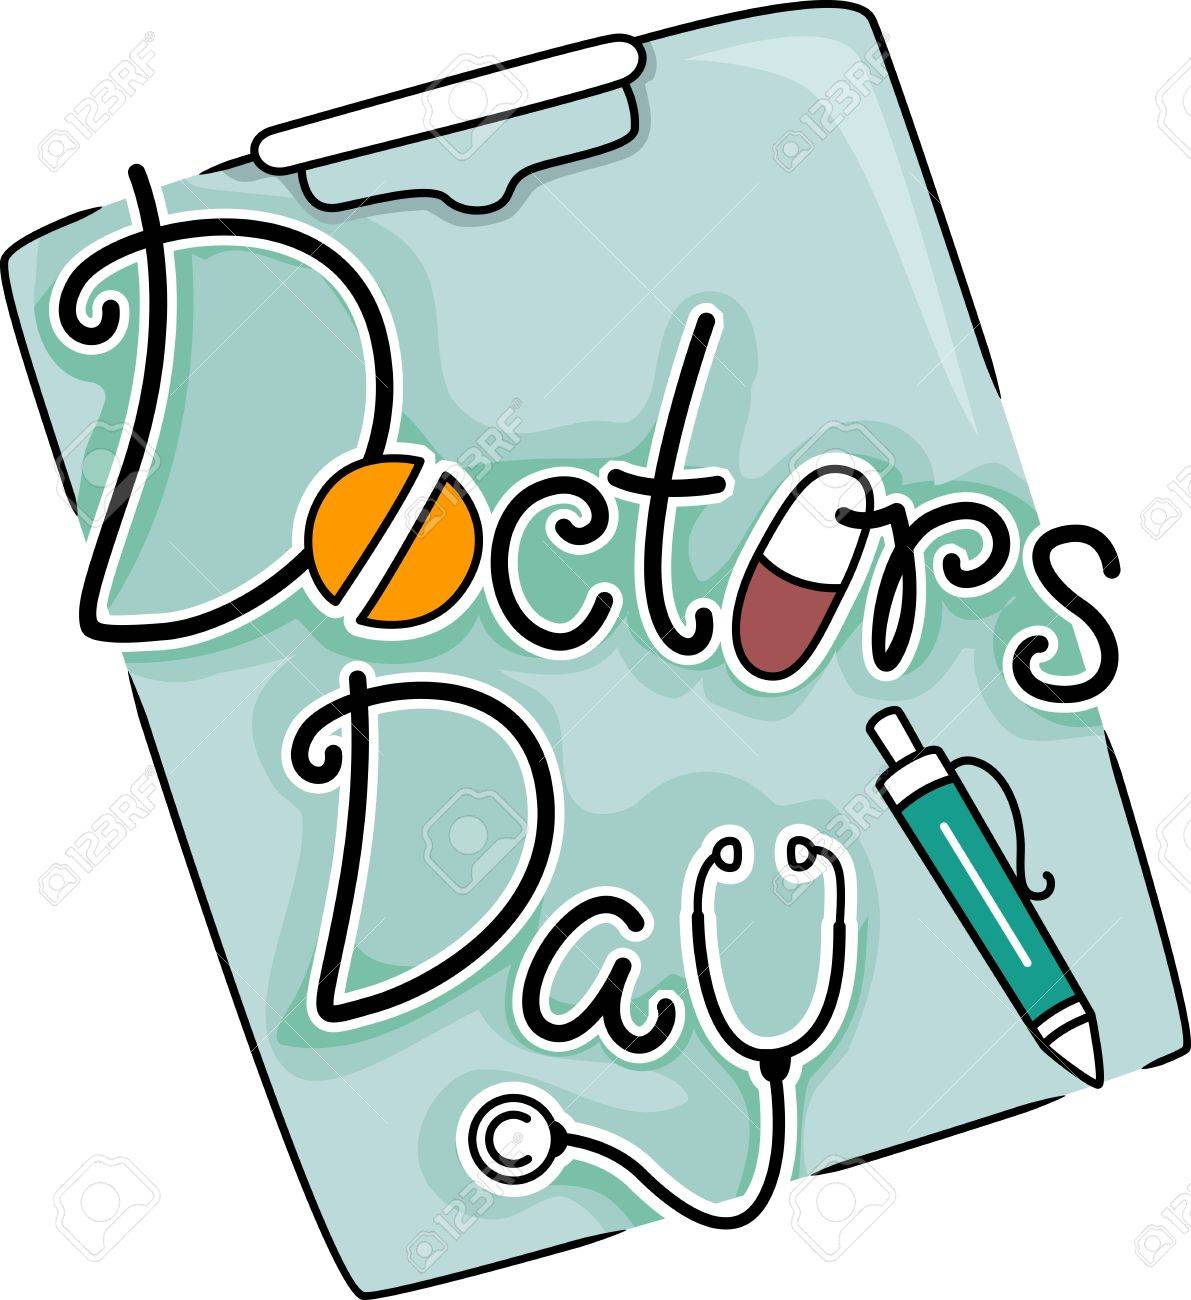 Coloring pages for doctors day - Doctor Cartoon Text Illustration Celebrating Doctors Day